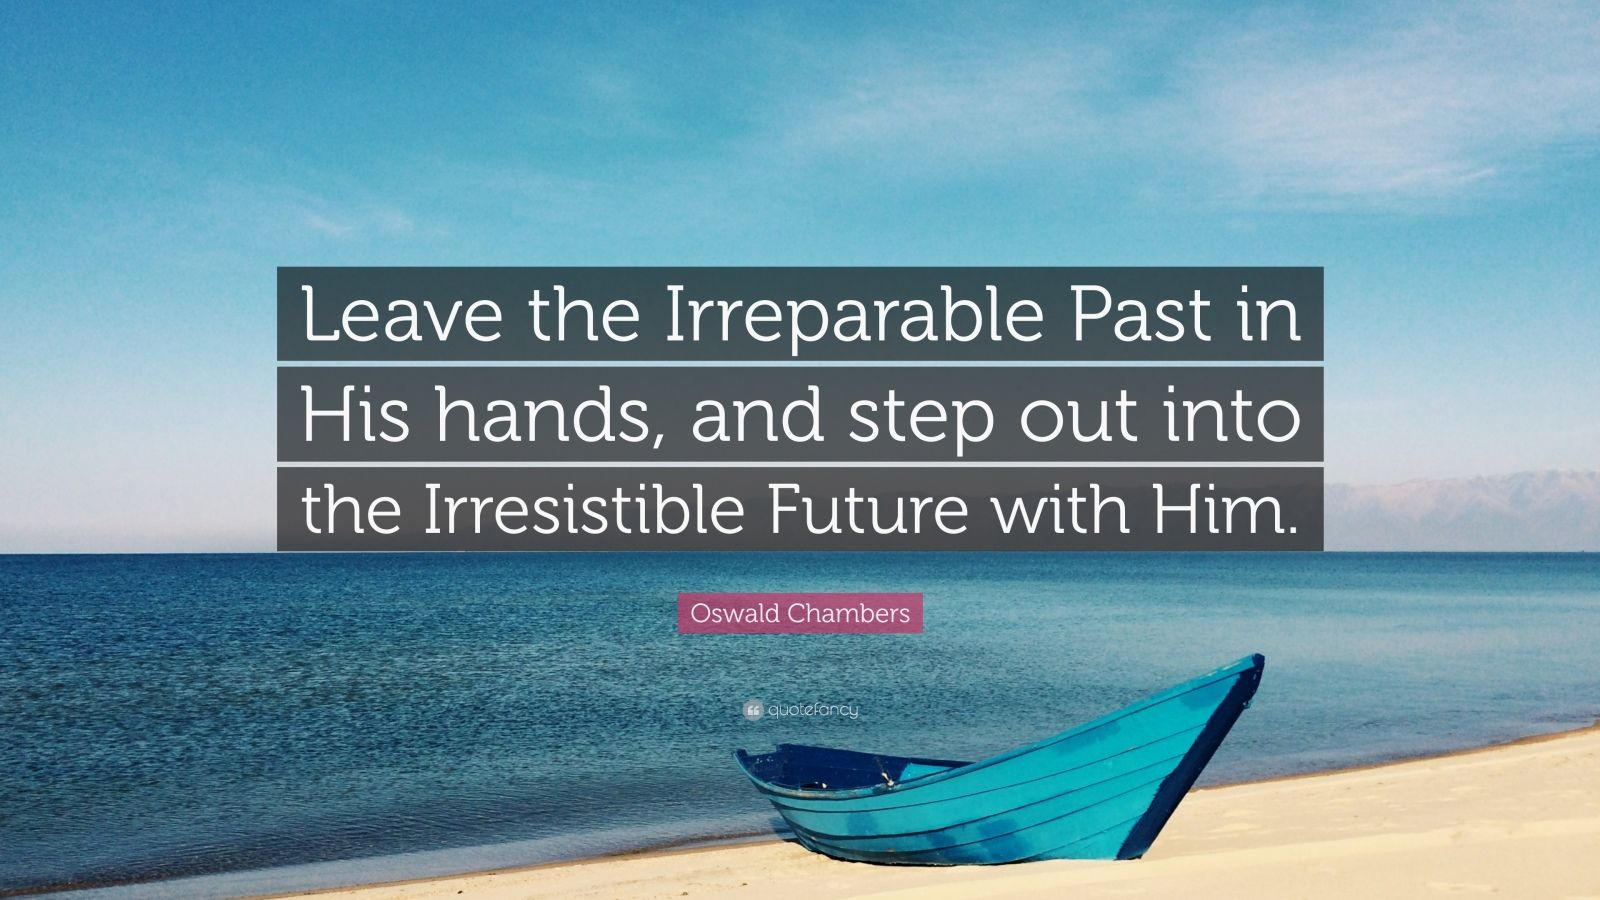 """Oswald Chambers Quote: """"Leave the Irreparable Past in His hands, and step out into the Irresistible Future with Him."""""""